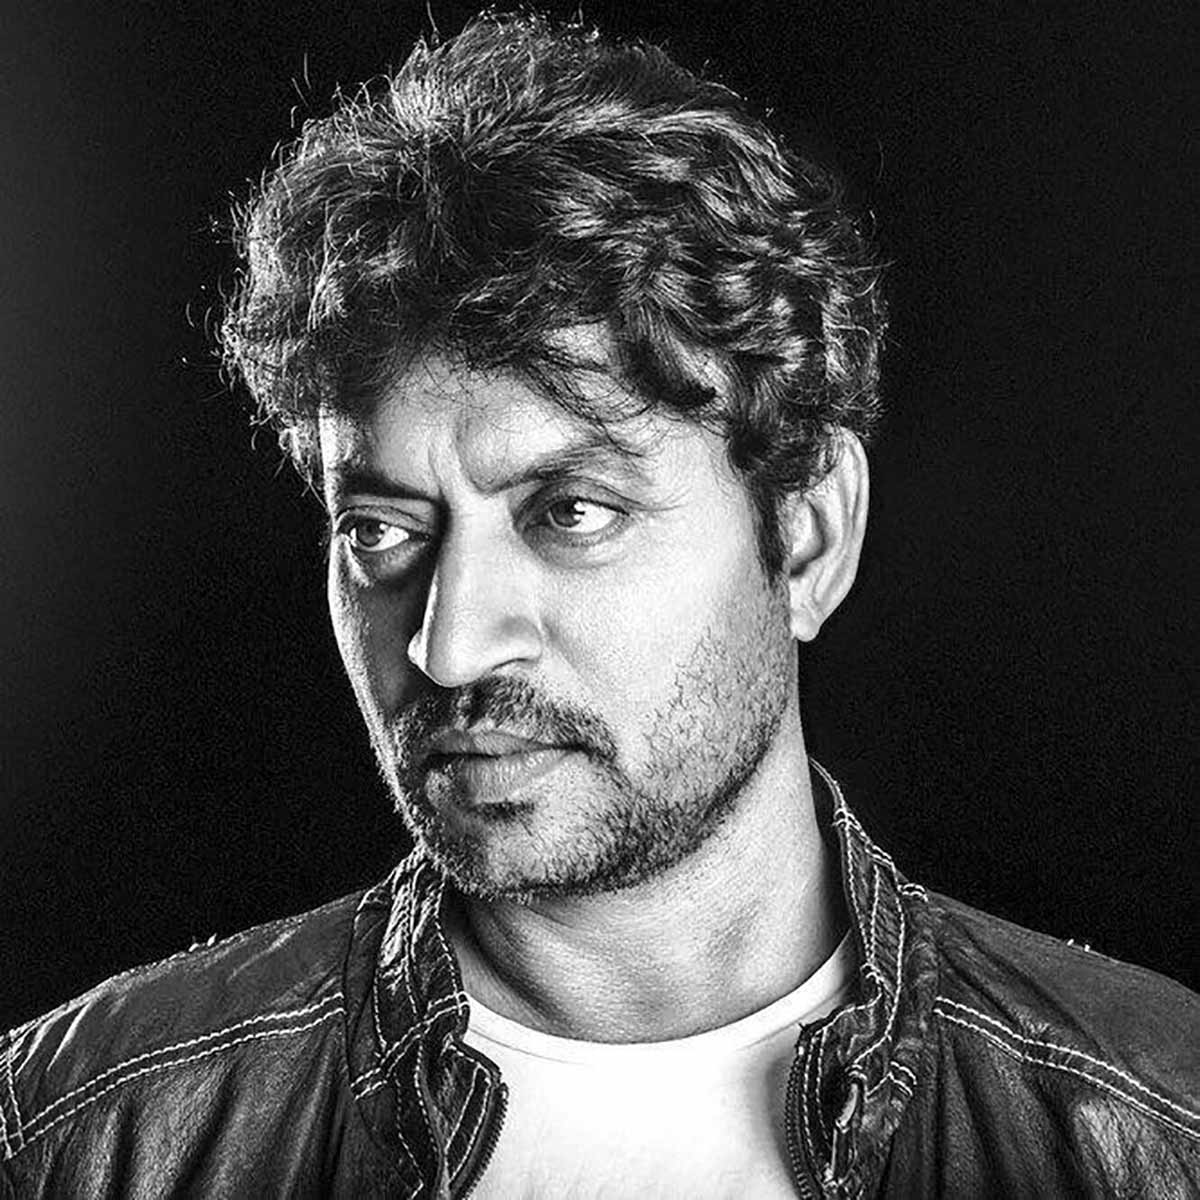 Thank you for the memories, Irrfan!